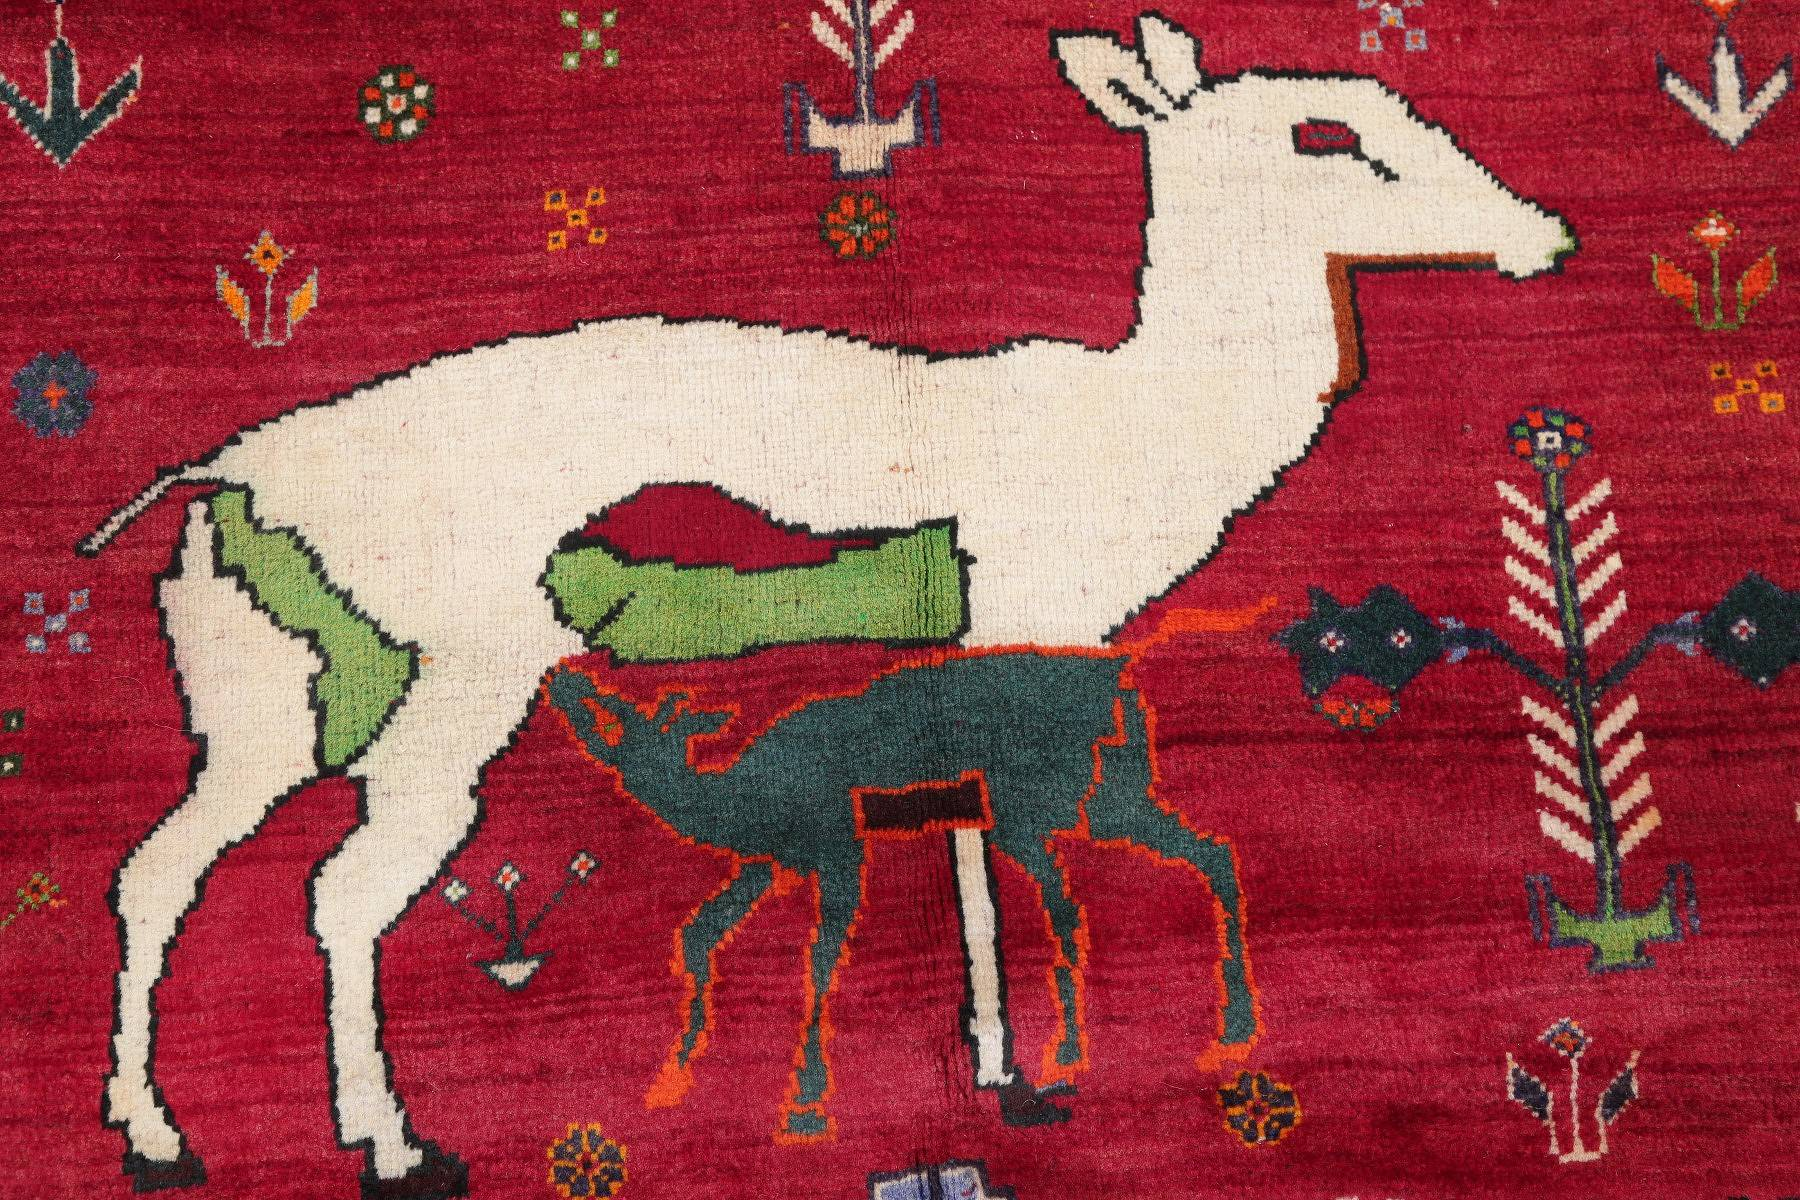 Animal Pictorial Gabbeh Qashqai Persian Hand-Knotted 3x5 Red Wool Rug